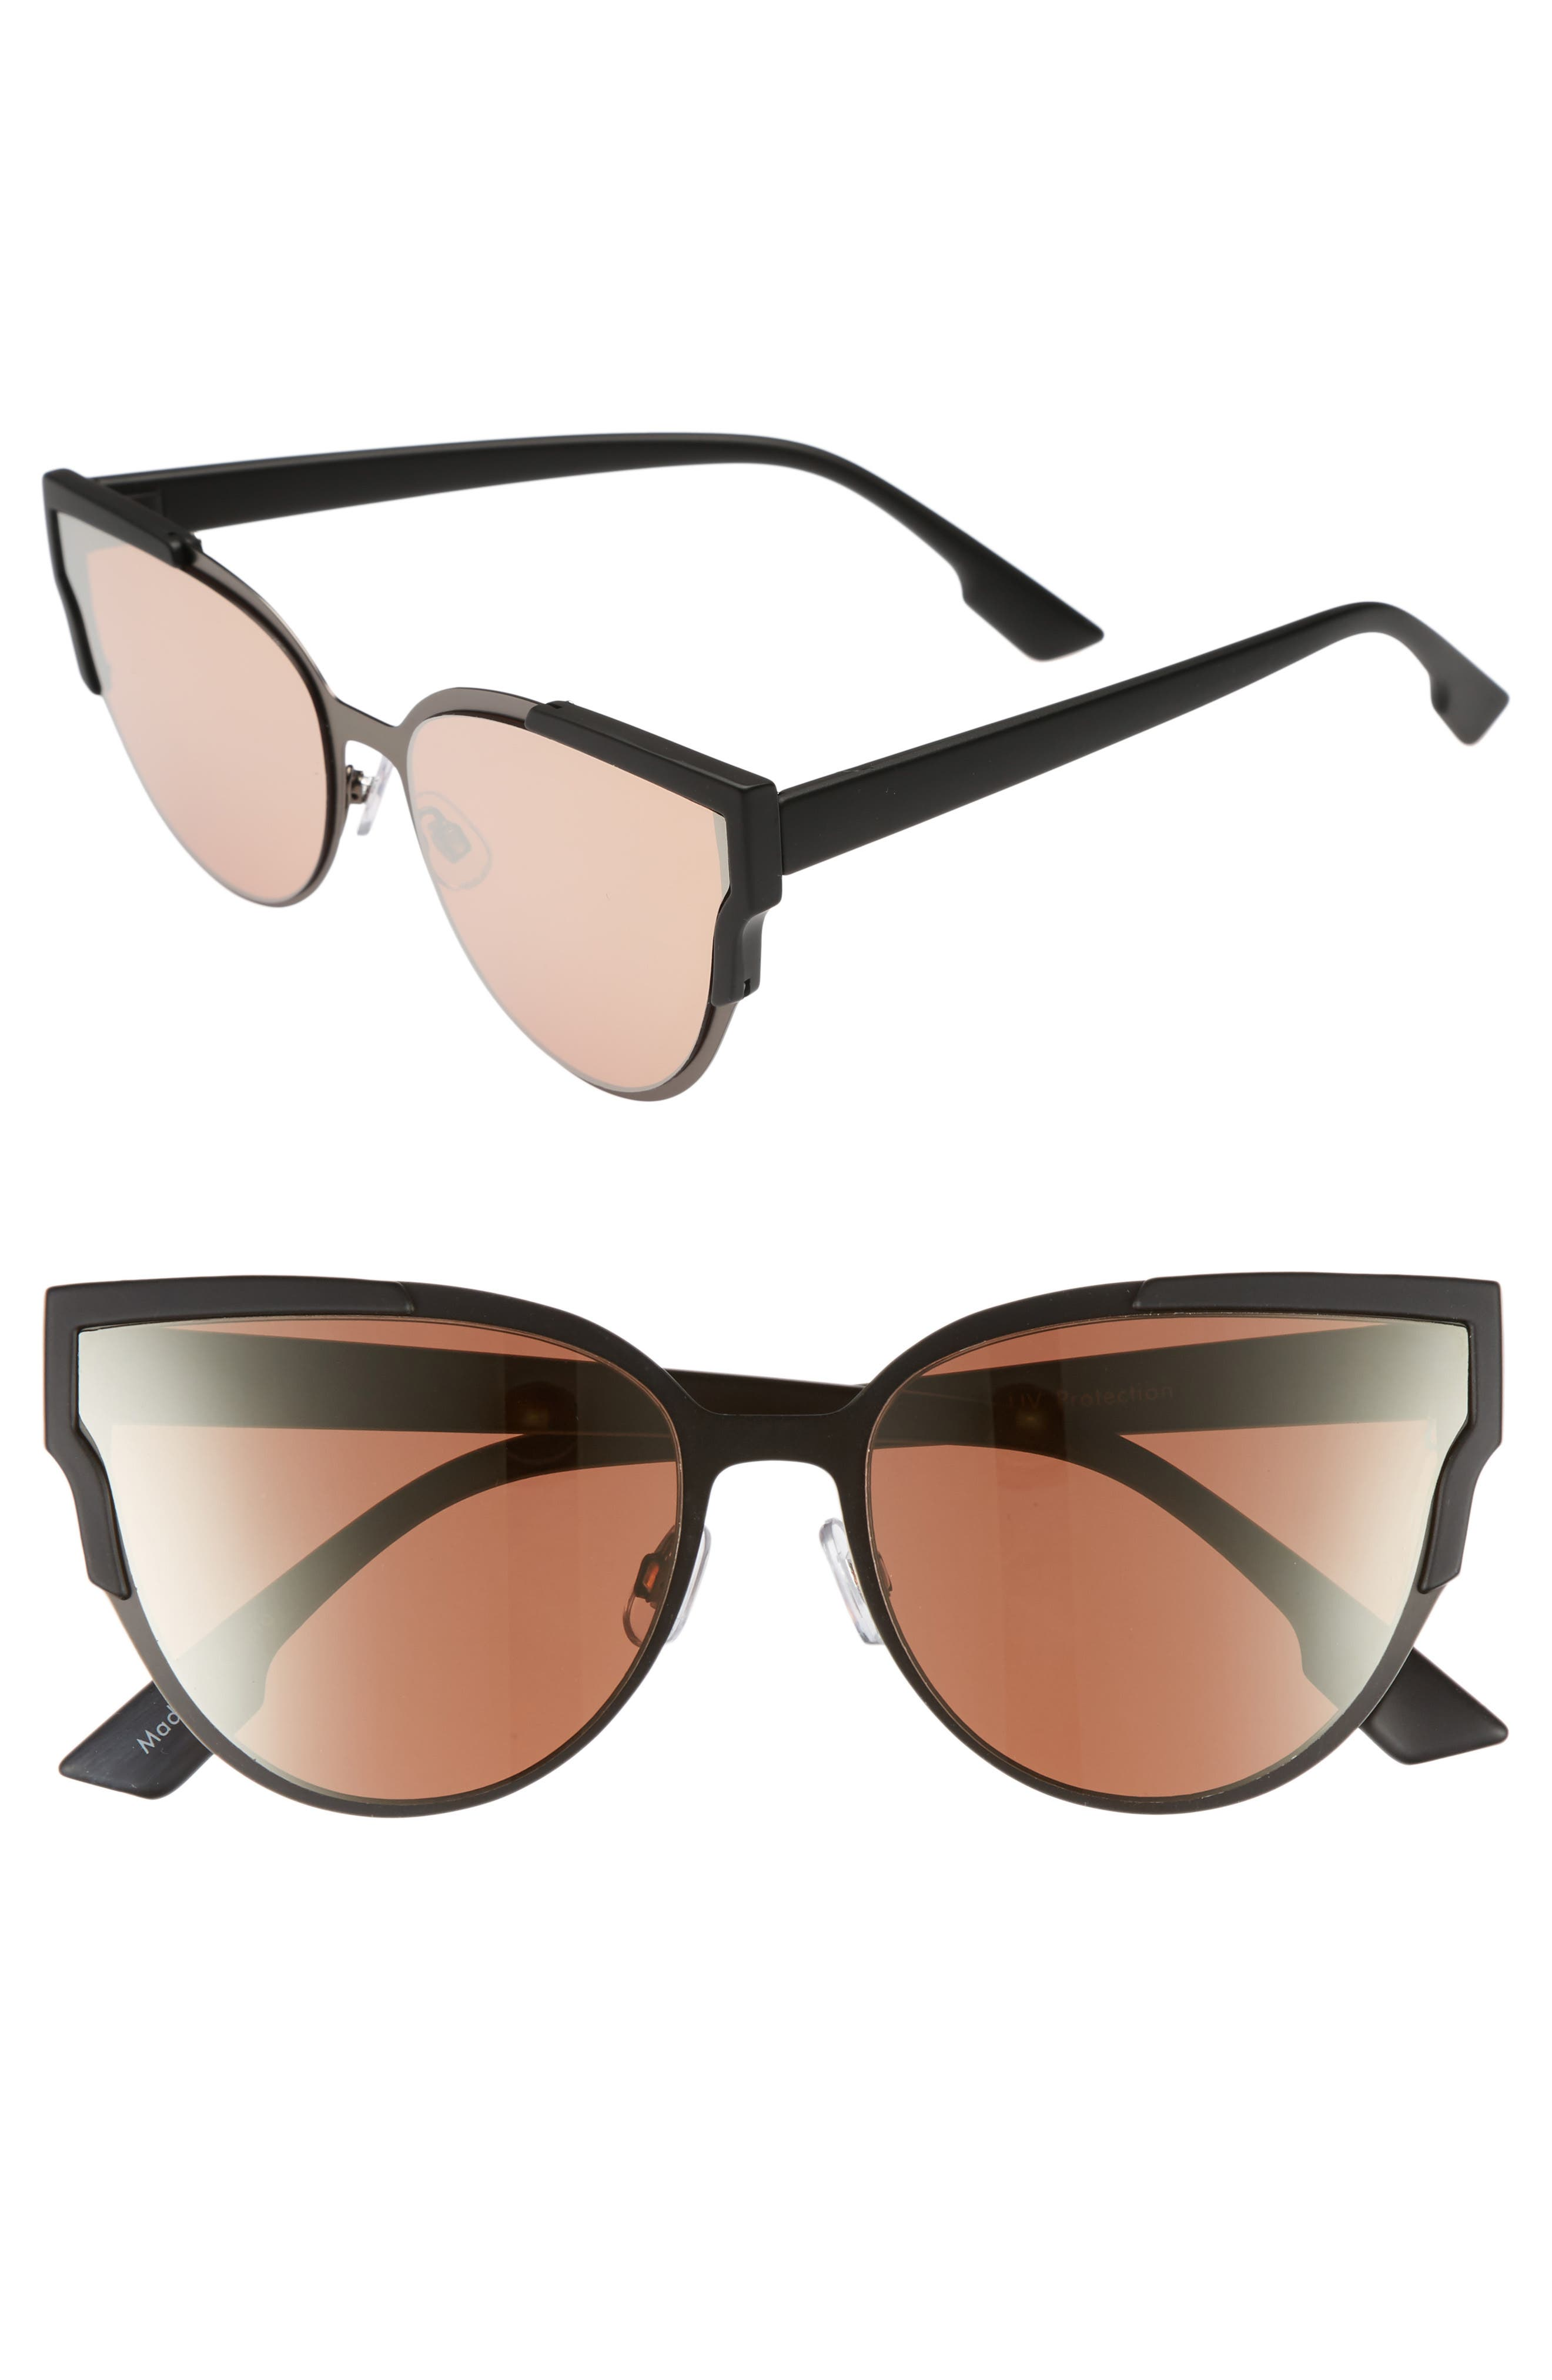 59mm Cat Eye Sunglasses,                             Main thumbnail 1, color,                             001